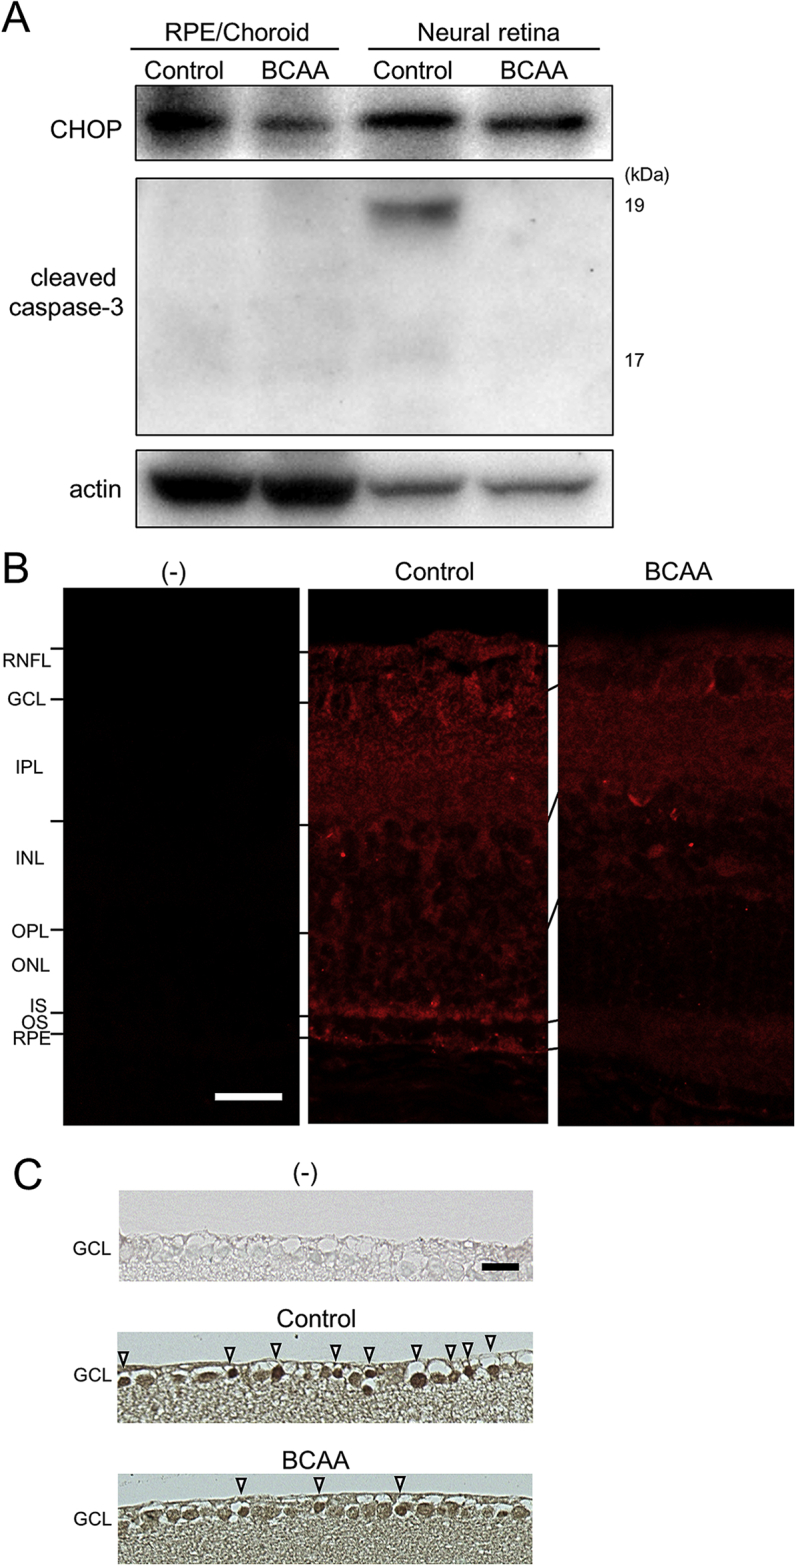 Suppression of ER stress by BCAAs leads to suppression of cleaved caspase-3 in mouse models. (A) Western blot analysis of 19-month-old rd12 mice treated with BCAAs, or water as a control. Extracts from dissected neural retinas and the combination of retinal pigment epithelium (RPE), choroid, and sclera (RPE/choroid) were analyzed with an anti-CHOP or cleaved caspase-3 antibody. Complete scans of western blots are shown in Fig. S4E. (B) Vertical retinal sections of 21-day-old rd10 mice stained with or without an anti-CHOP antibody (red). Abbreviations: RNFL, retinal nerve fiber layer; GCL, Ganglion cell layer; IPL, Inner plexiform layer; INL, Inner nuclear layer; OPL, Outer plexiform layer; ONL, Outer nuclear layer; IS, inner segment of the photoreceptor cell; OS, outer segment of the photoreceptor cell; and RPE, Retinal pigment epithelium. (C) Vertical retinal sections of 18-month-old GLAST (+/−) mice stained with or without an anti-CHOP antibody. Note that more cells remained in the GCL of BCAA-treated mouse than in that of control mouse. Note also that more cells were strongly stained by the CHOP antibody (arrowheads) in control mouse than in BCAA-treated mouse. Scale bars: 20 μm in B and C.